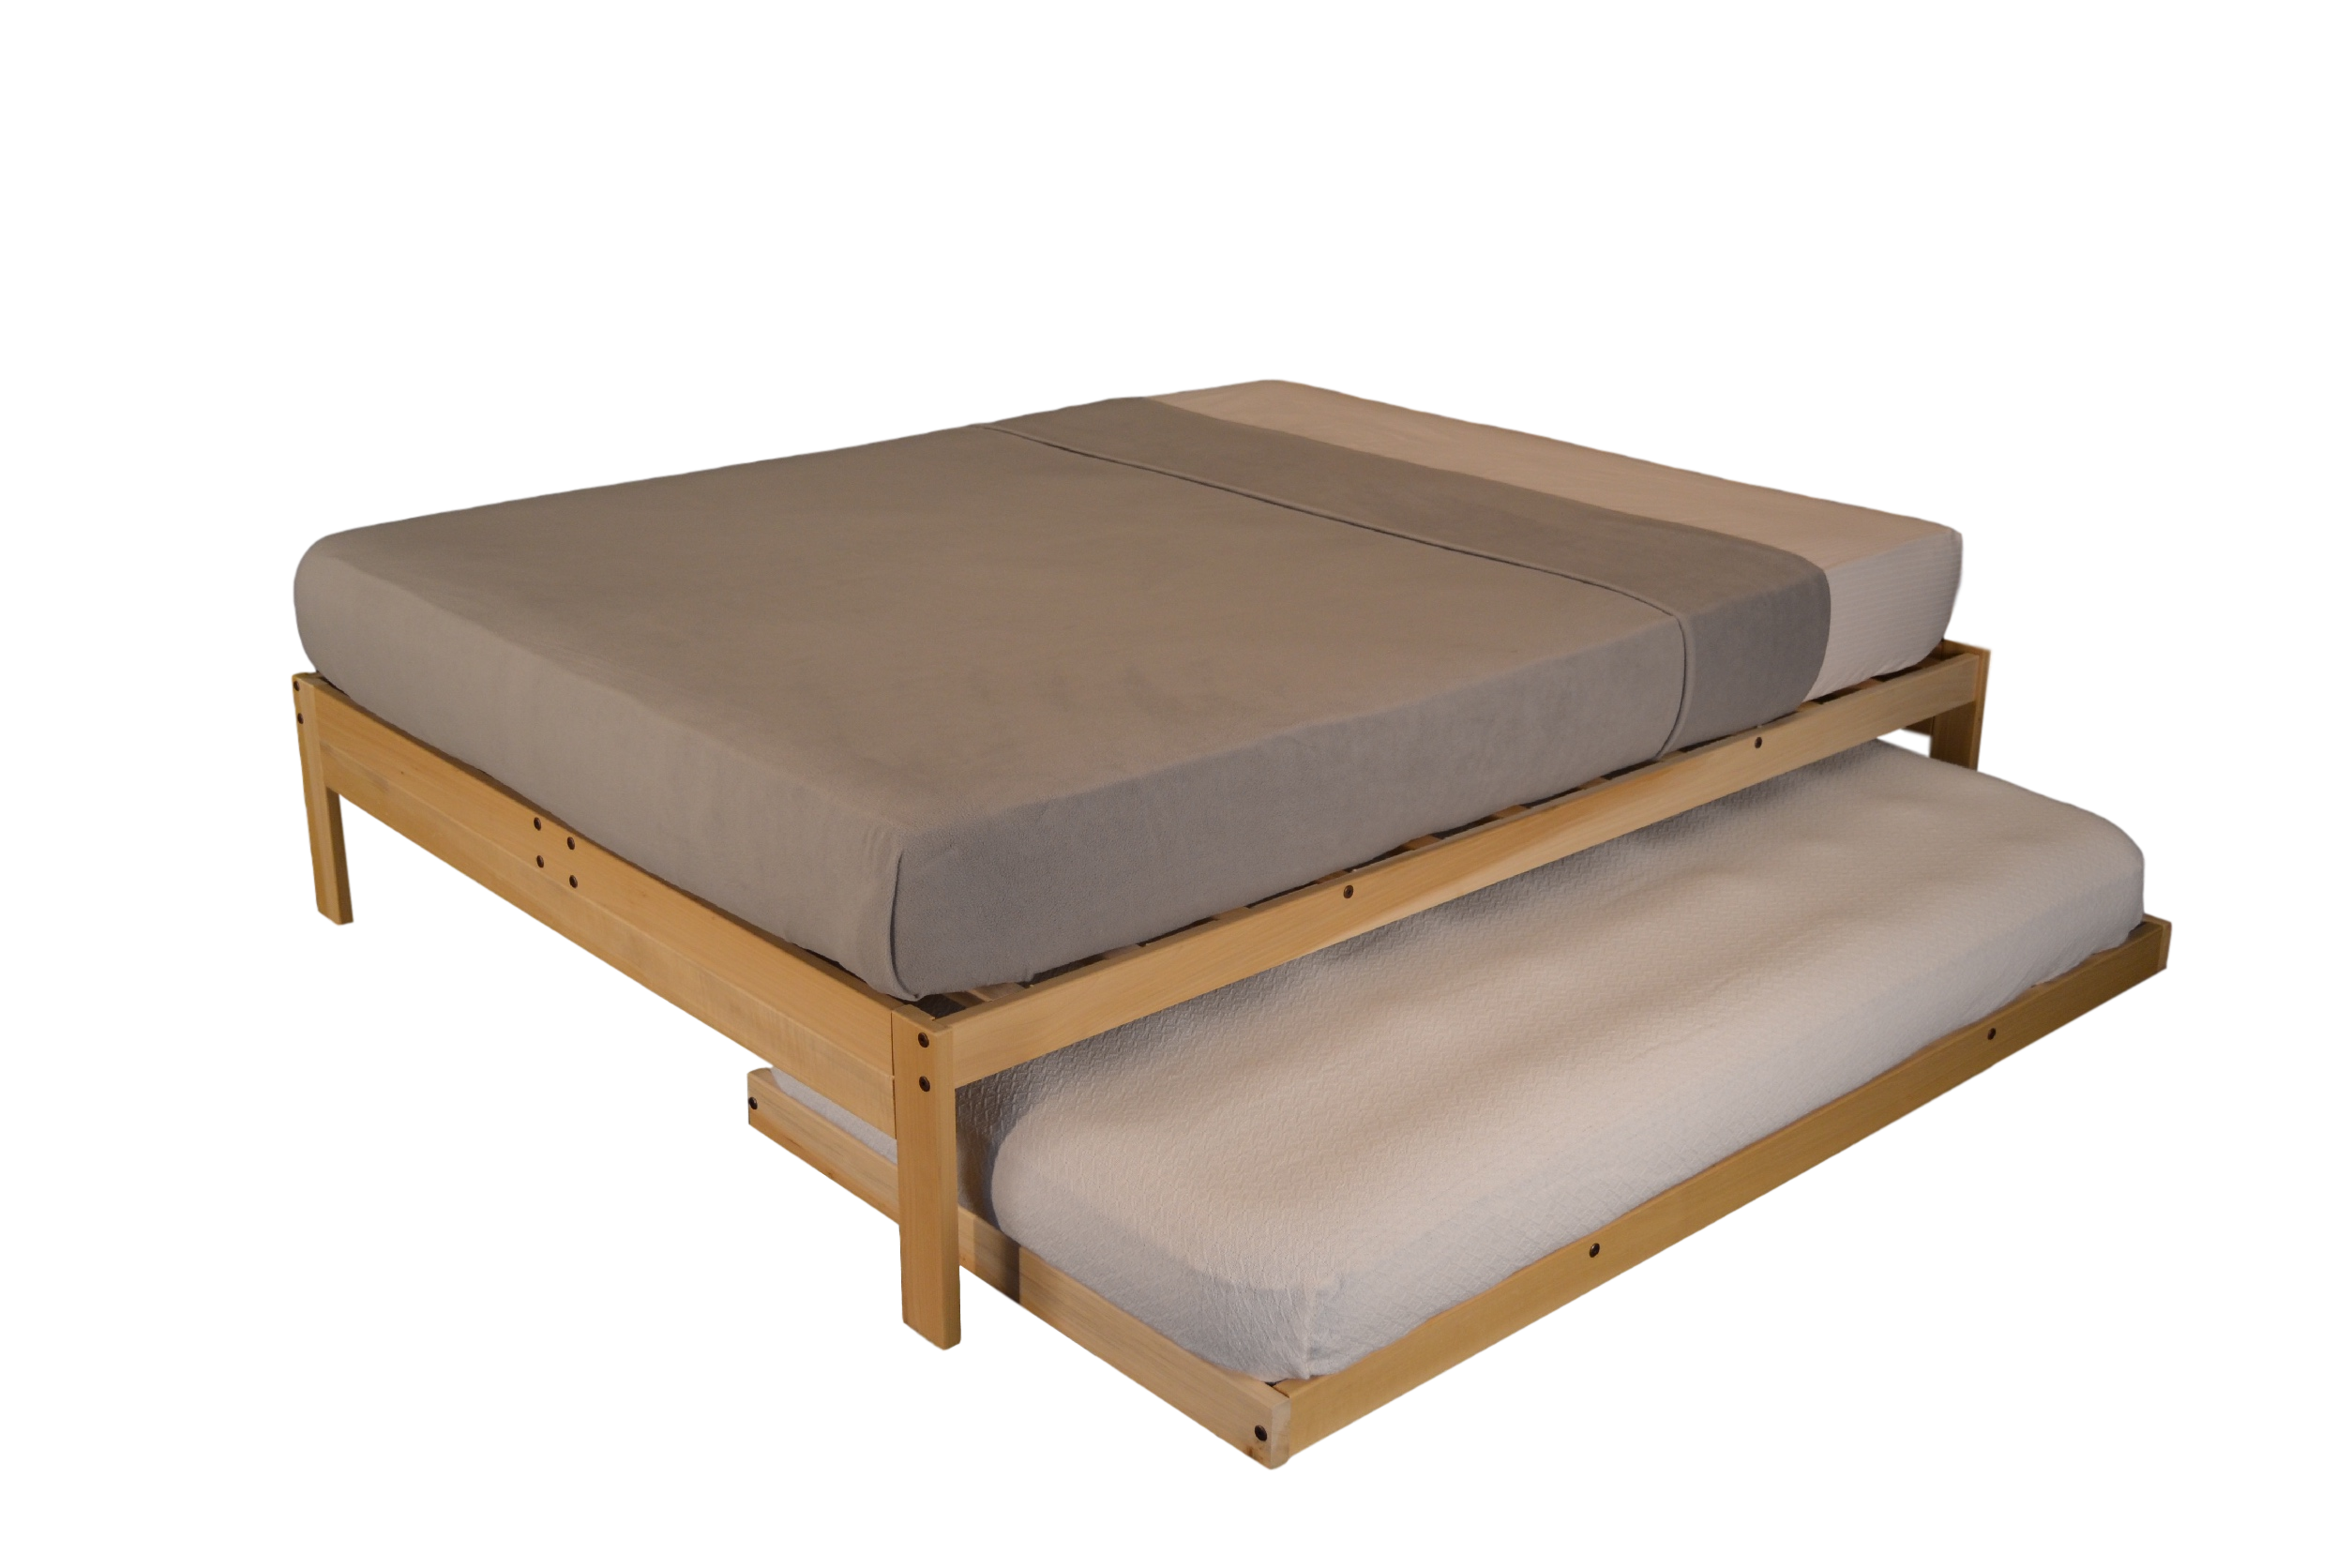 Trundle Bed The Futon Store and Mattress Center